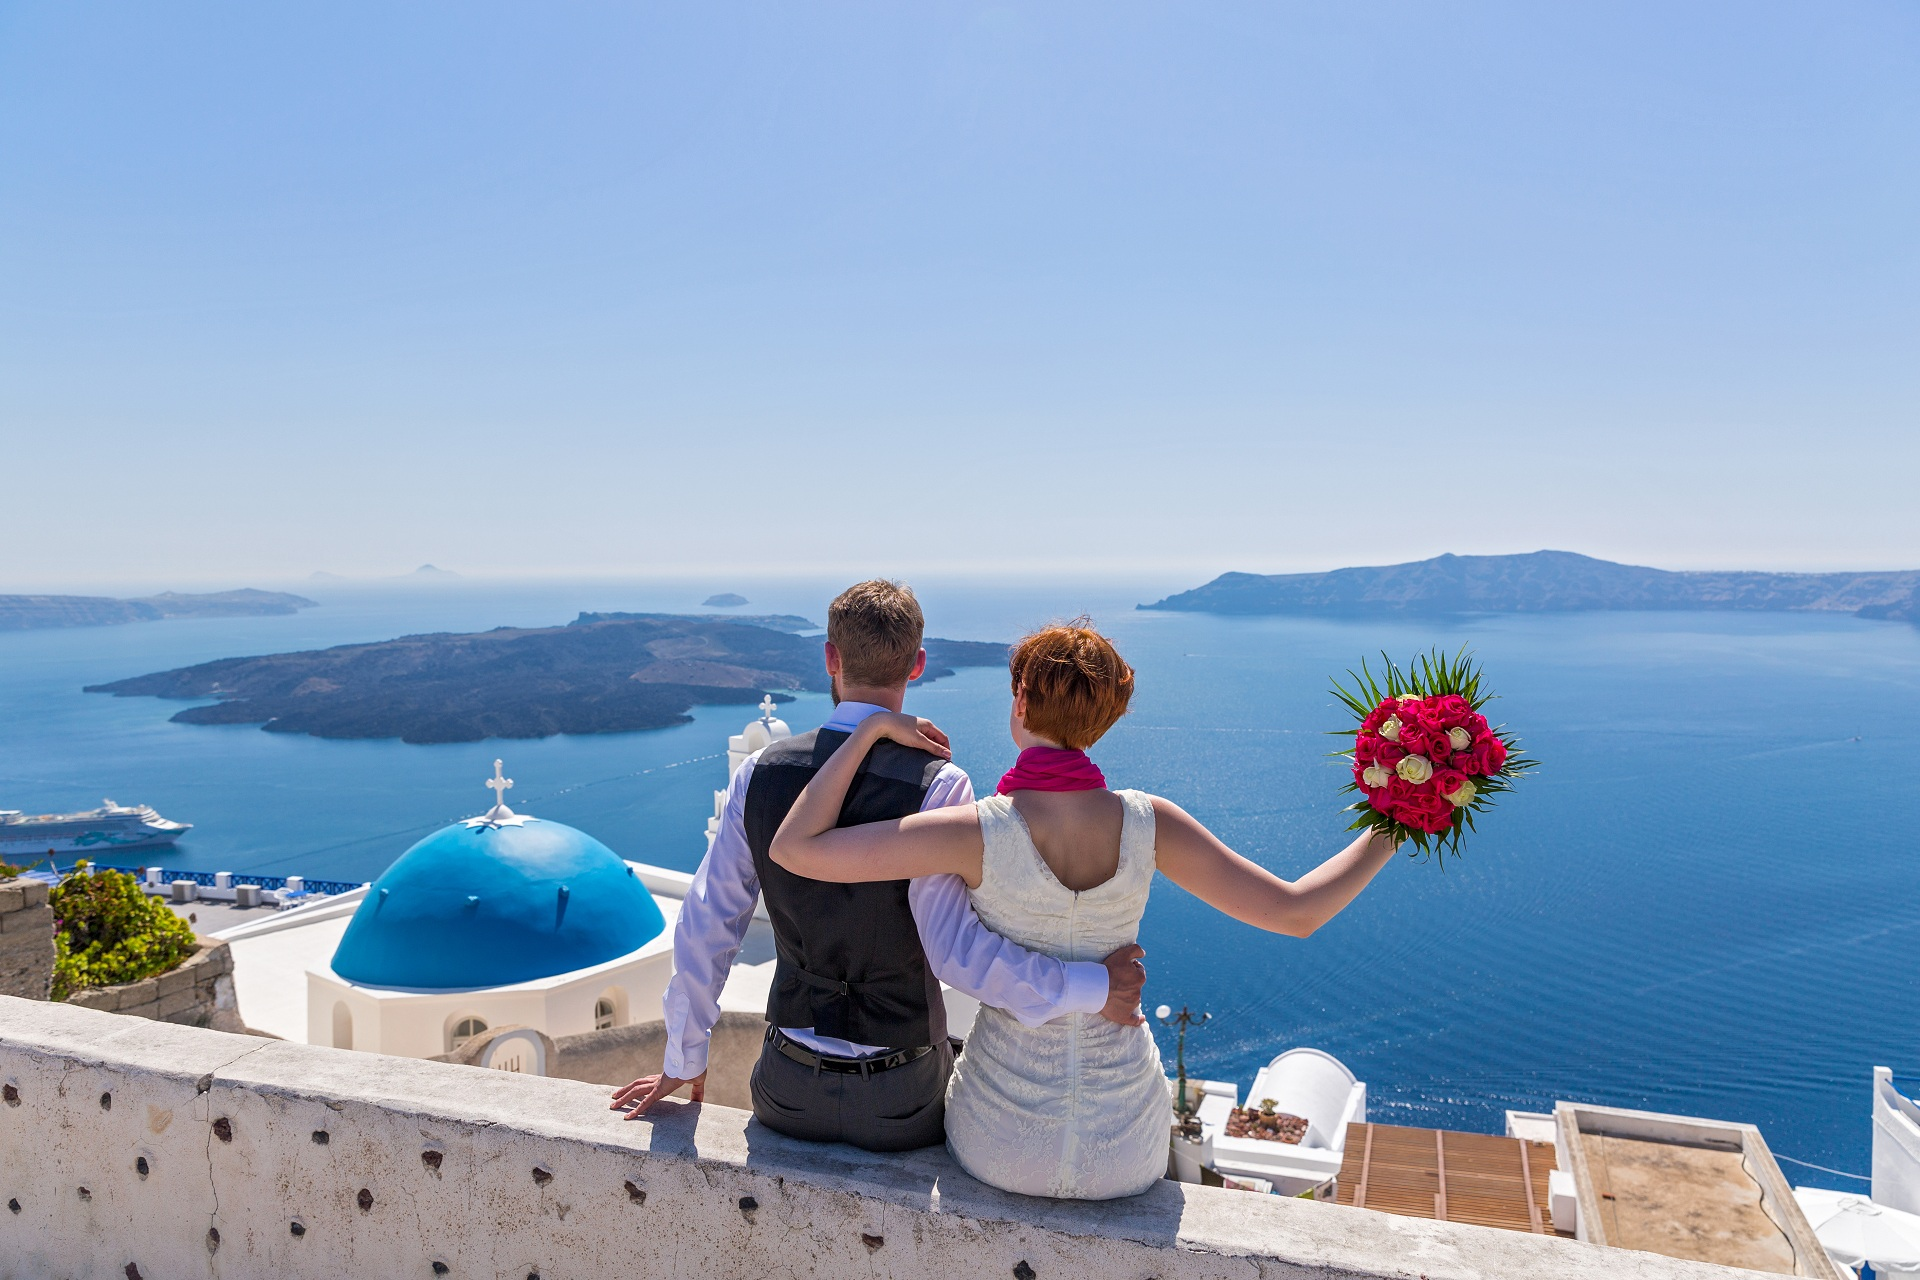 Honeymoon Vacations in Santorini | La Mer Deluxe Hotel & Spa